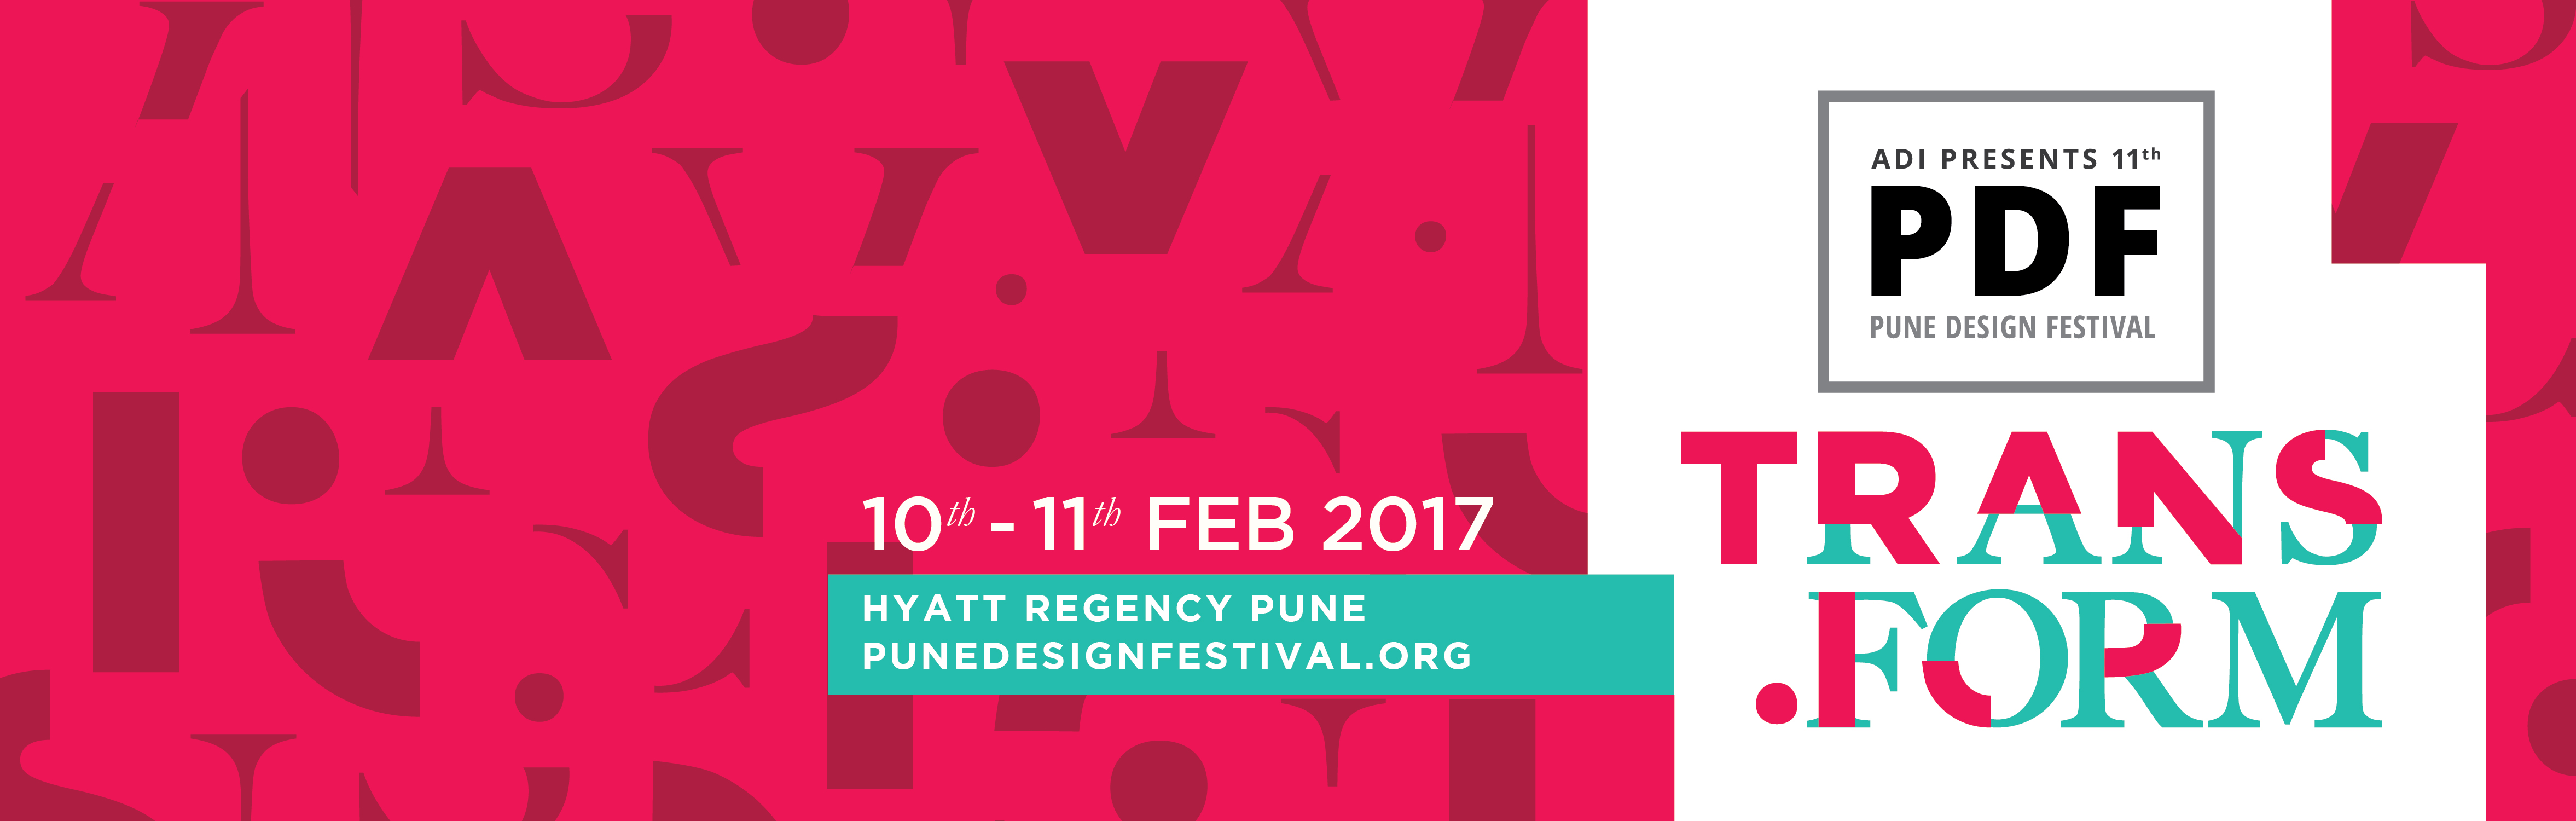 Listen, learn, talk, collaborate, design, contemplate, unbound, enjoy with various experts and achievers of design from around the world. Each of the esteemed speakers will share with all of us a unique aspect of 'CONNECTIONS'.